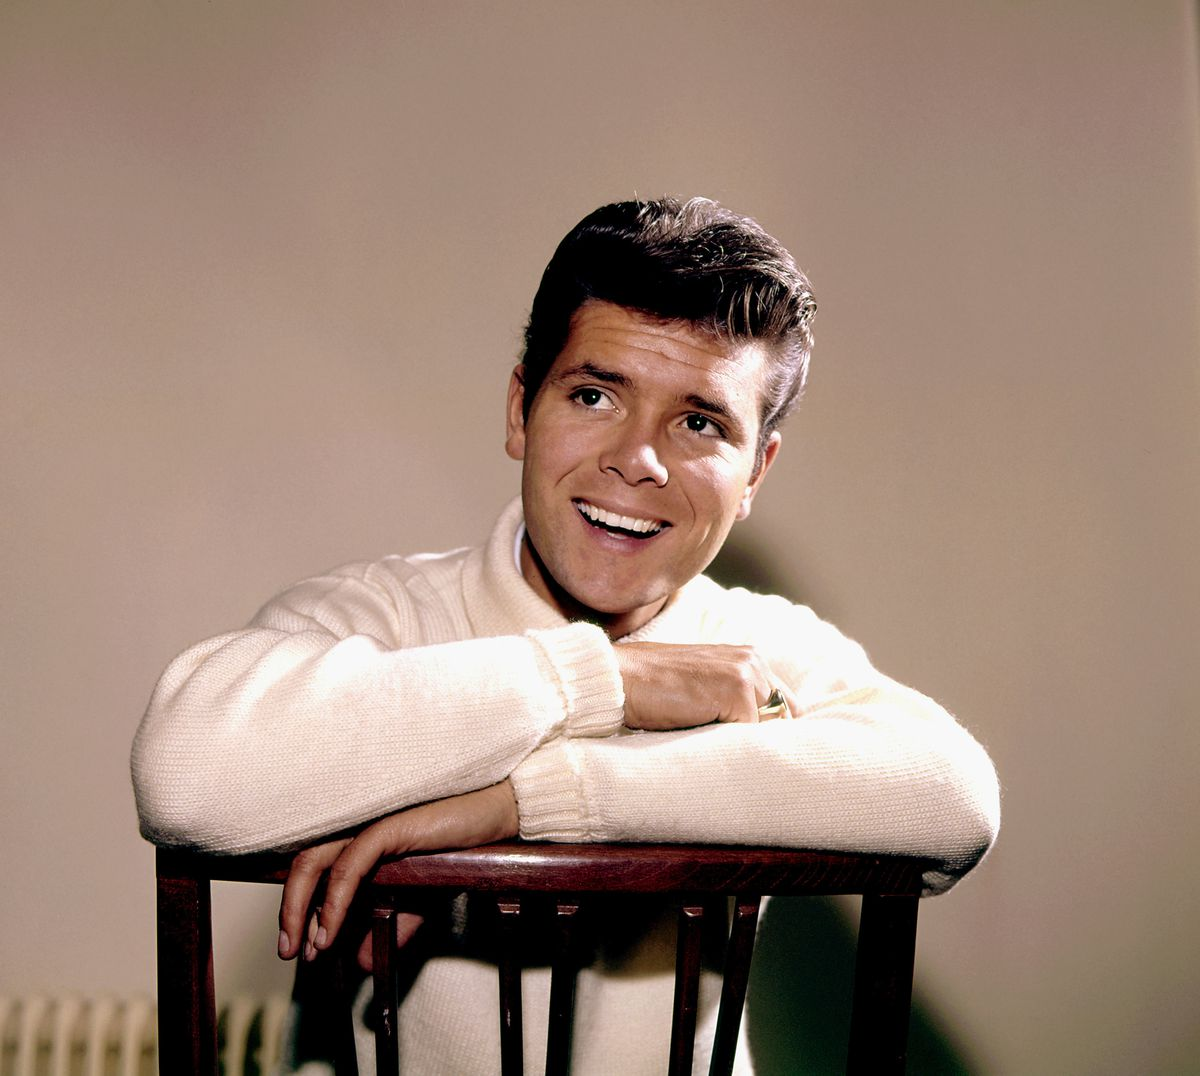 Cliff Richard in his younger days